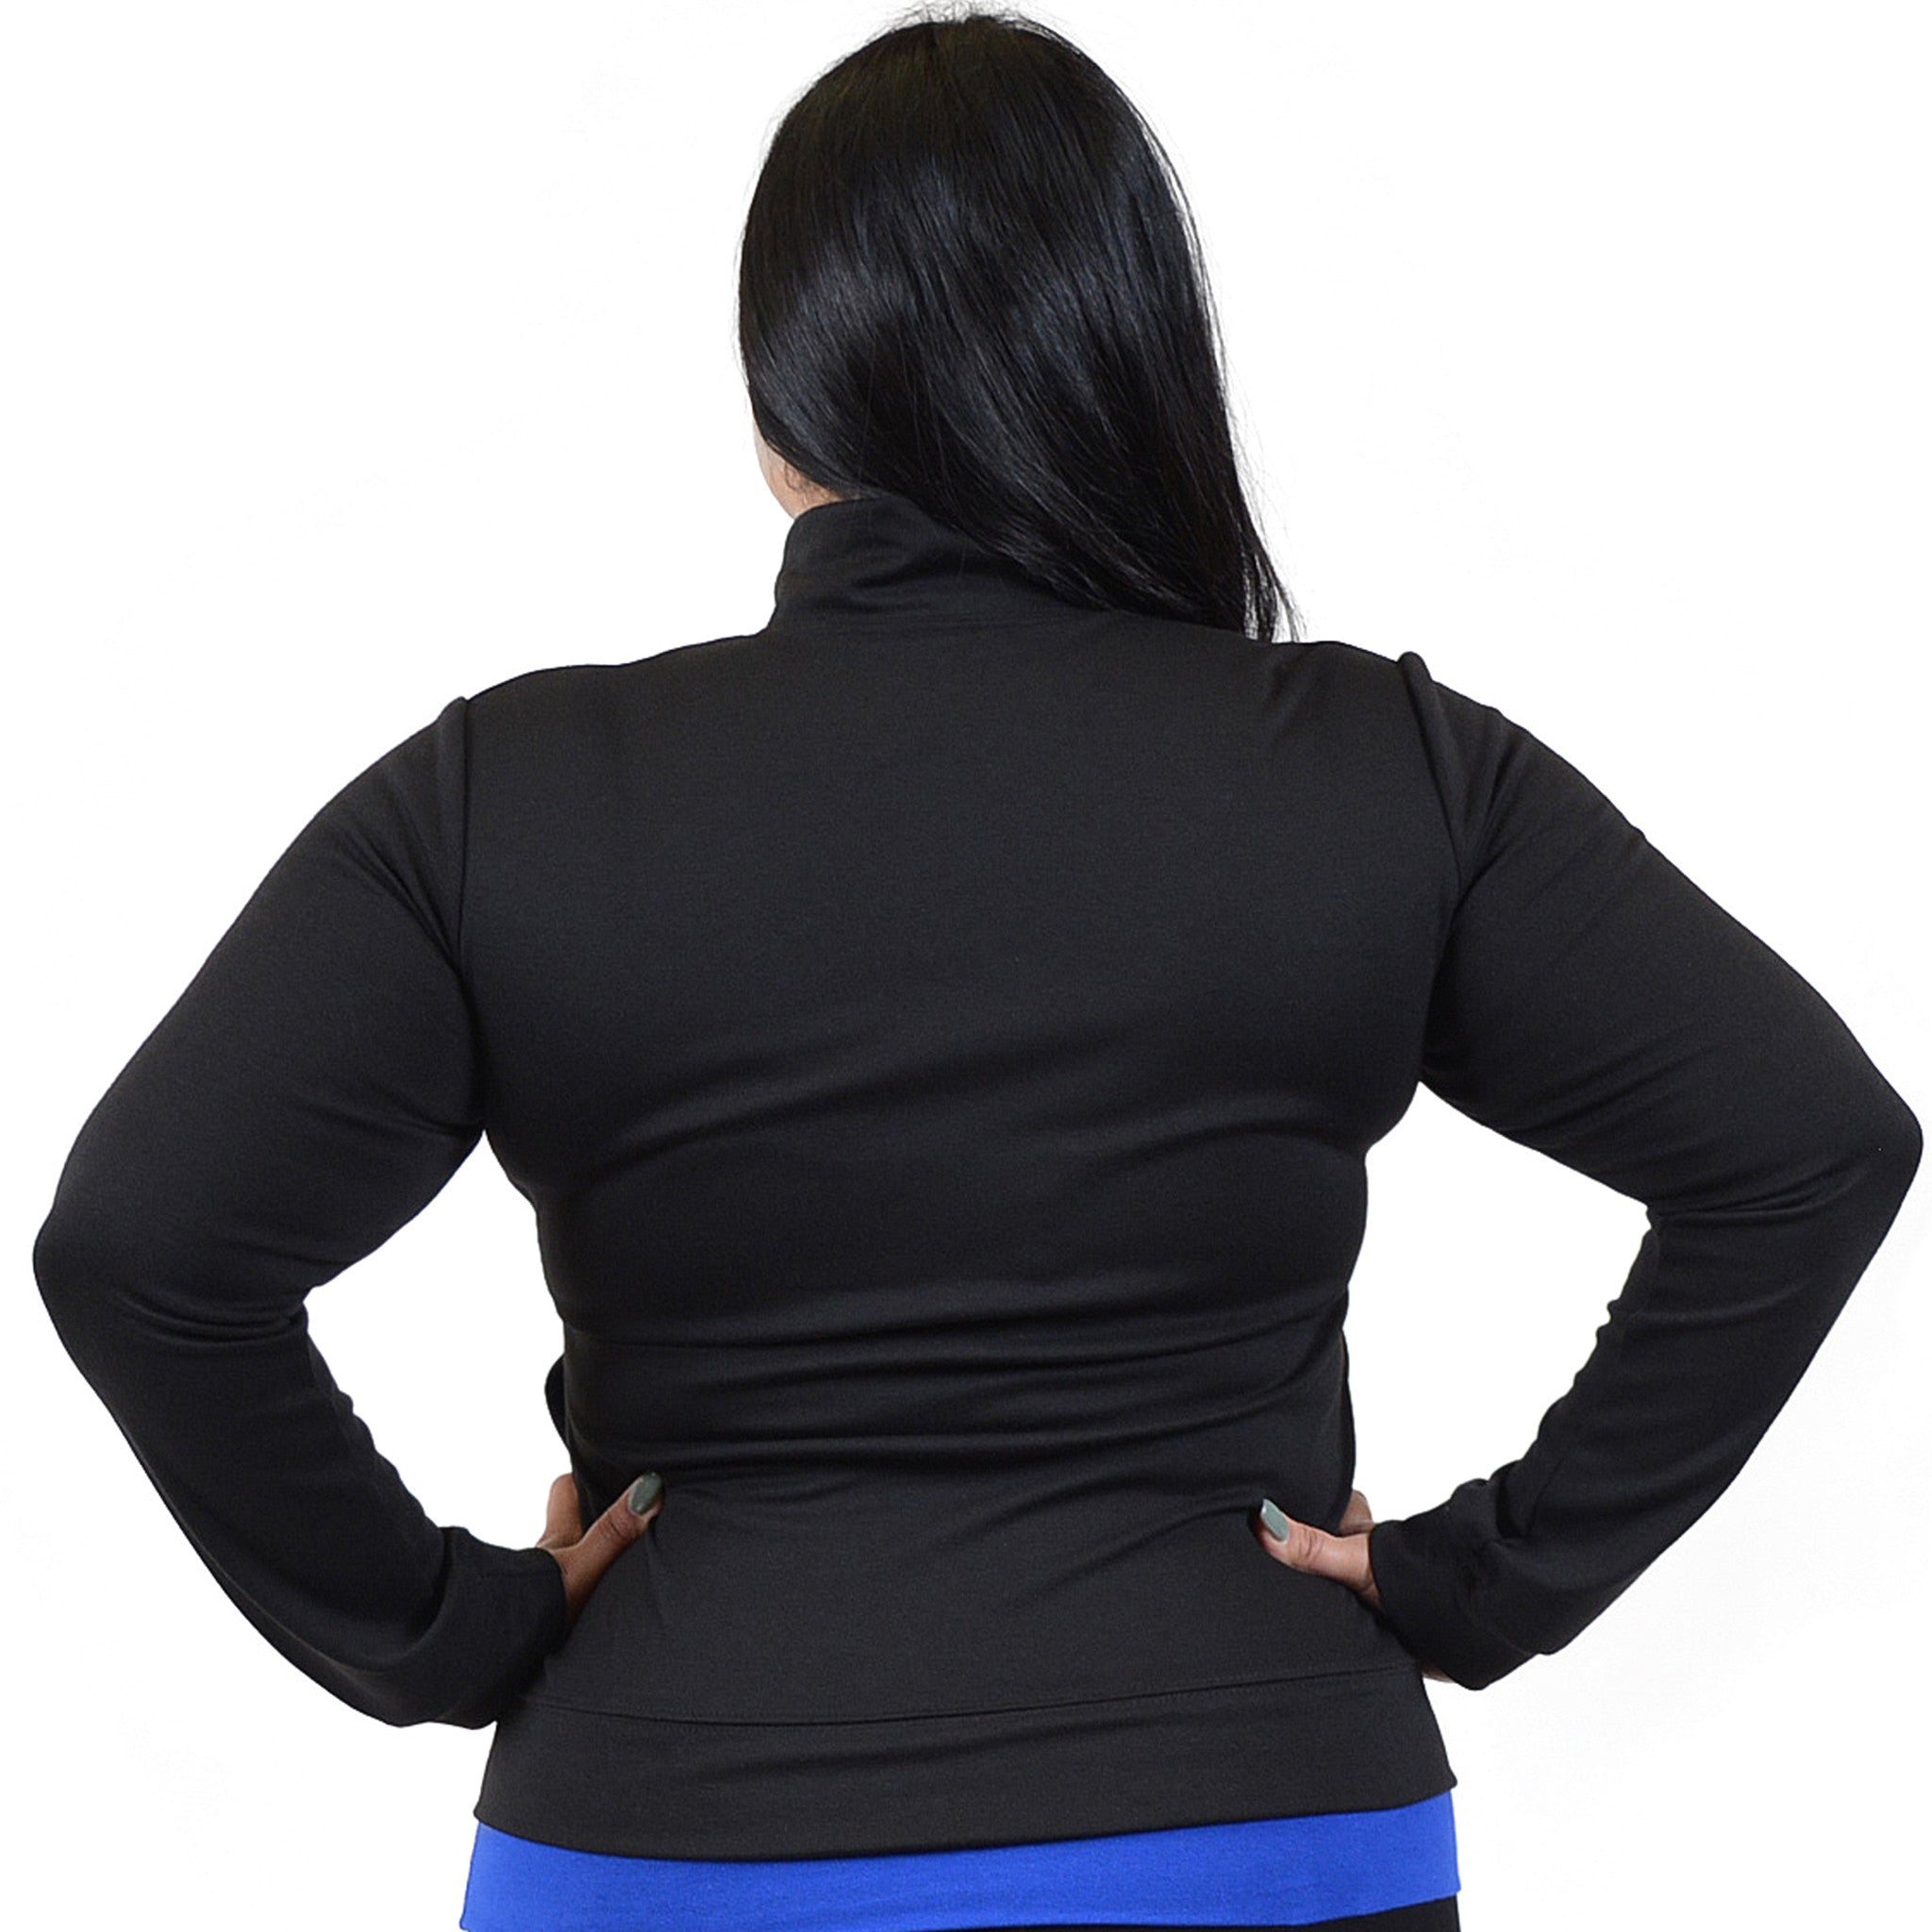 Personalizable and Customizable Plus Size Cotton Warm Up Jacket